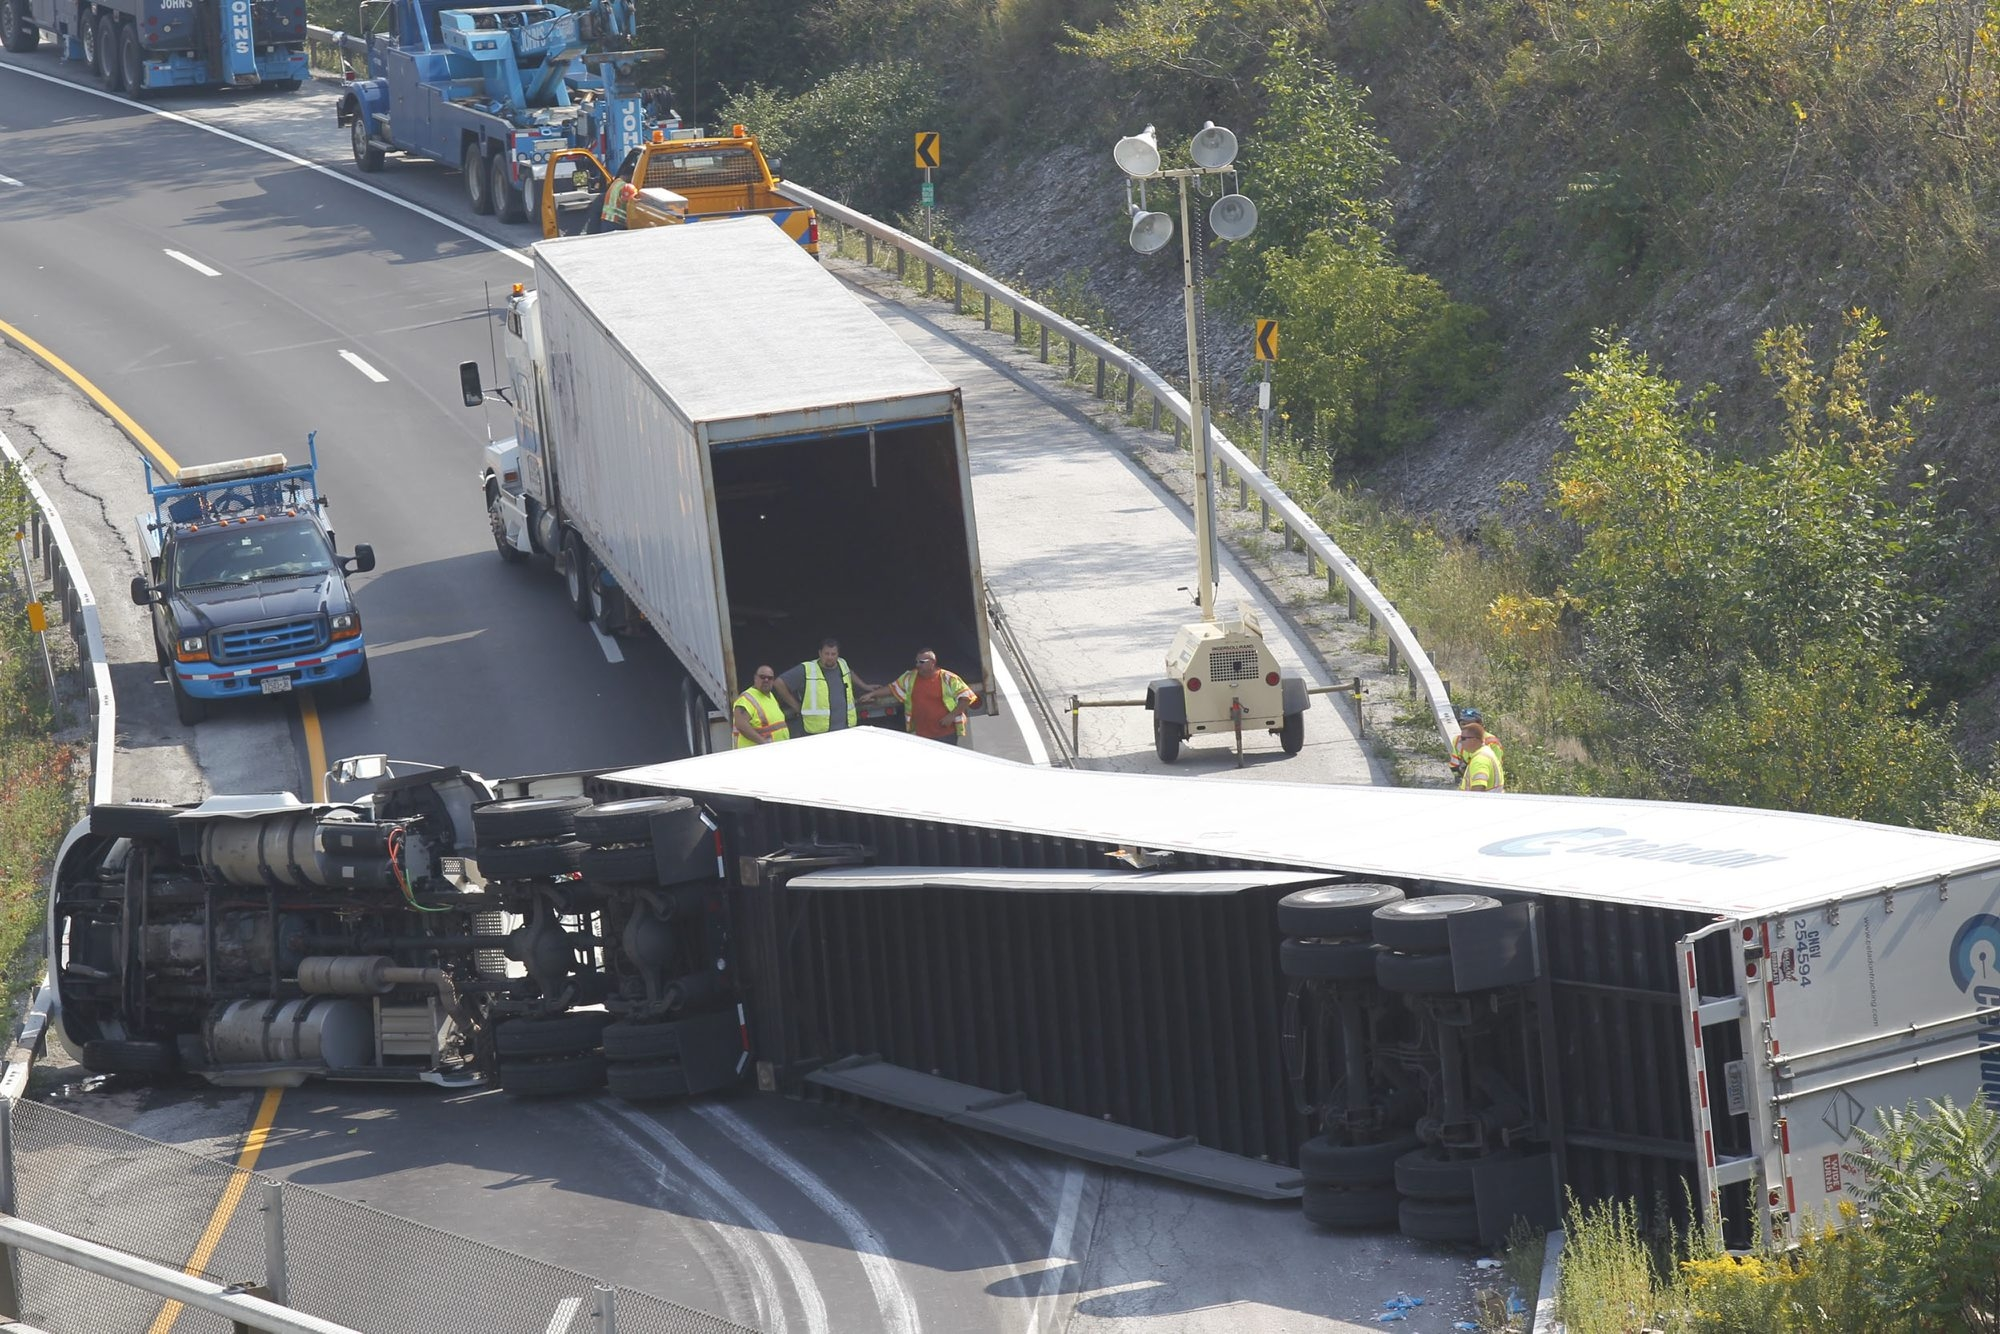 The driver of the tractor-trailer lost control, overturning the truck and spilling his cargo onto the roadway.